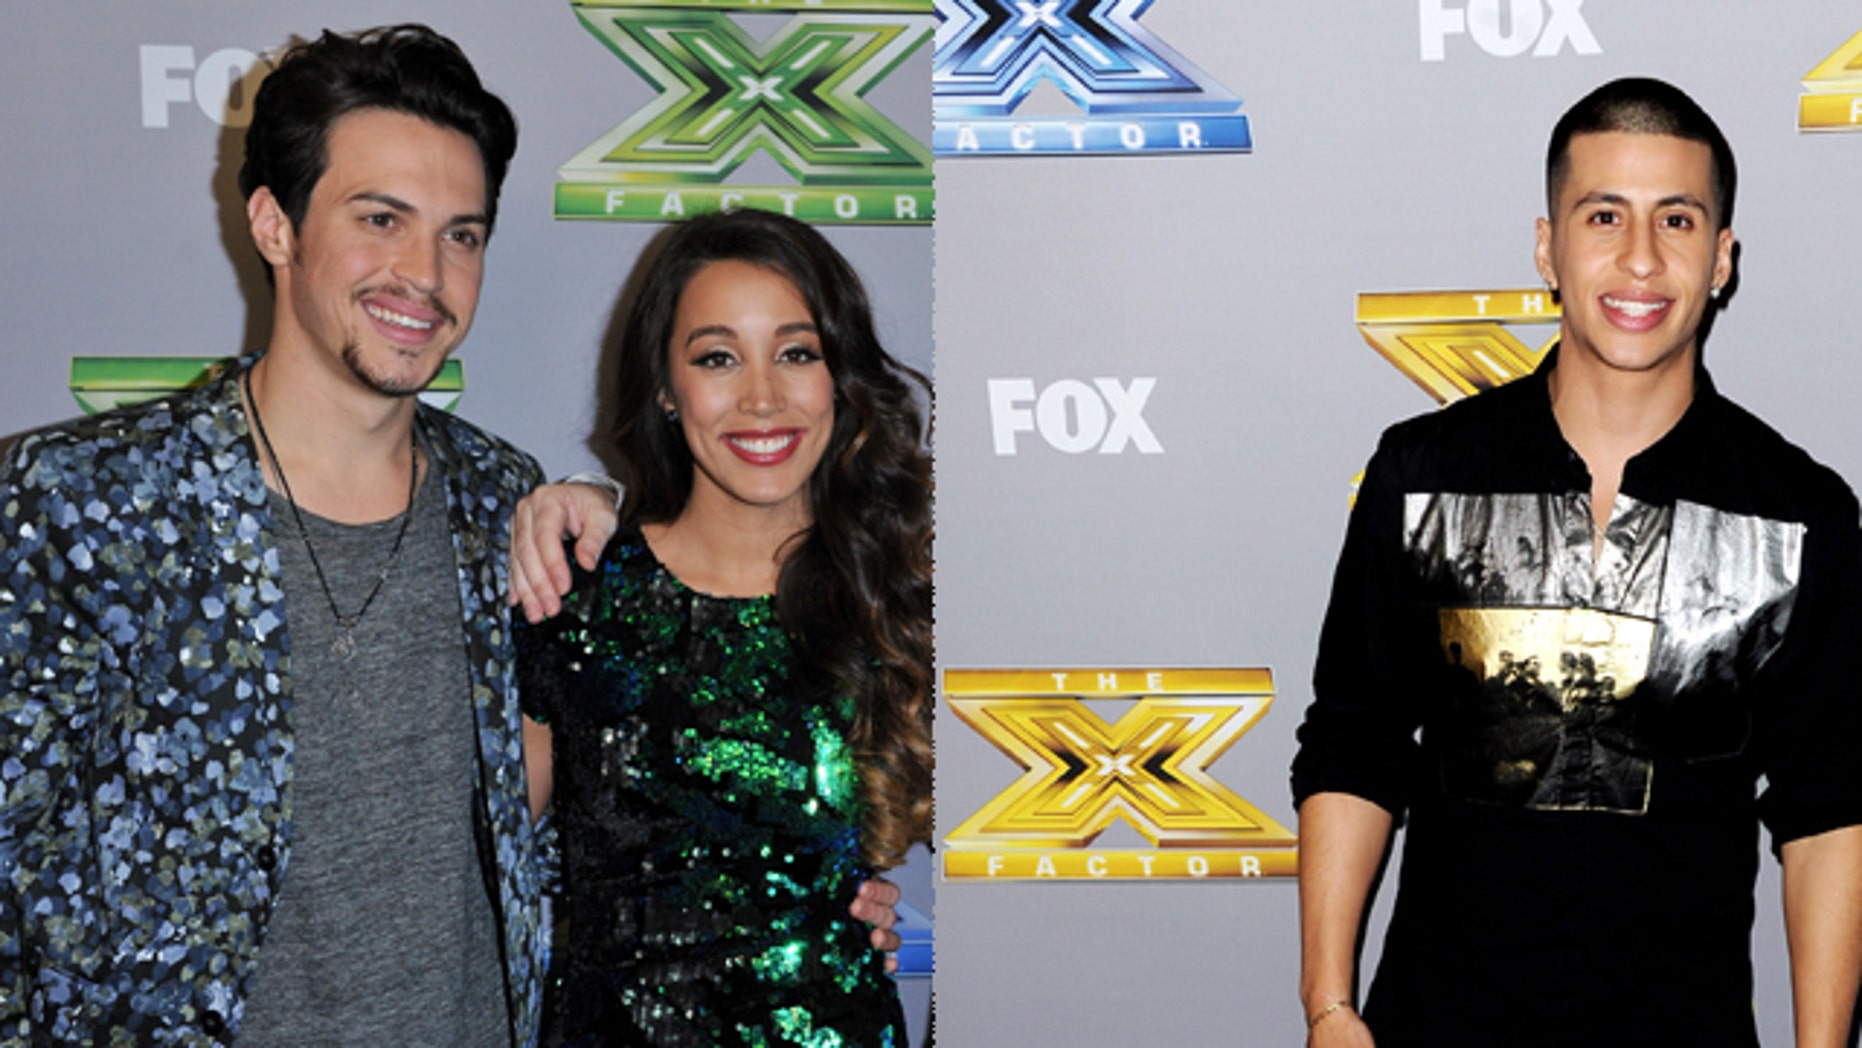 Alex and Sierra (left) won X Factor season 3 and Carlito Olivero (right) came in third. Getty Images